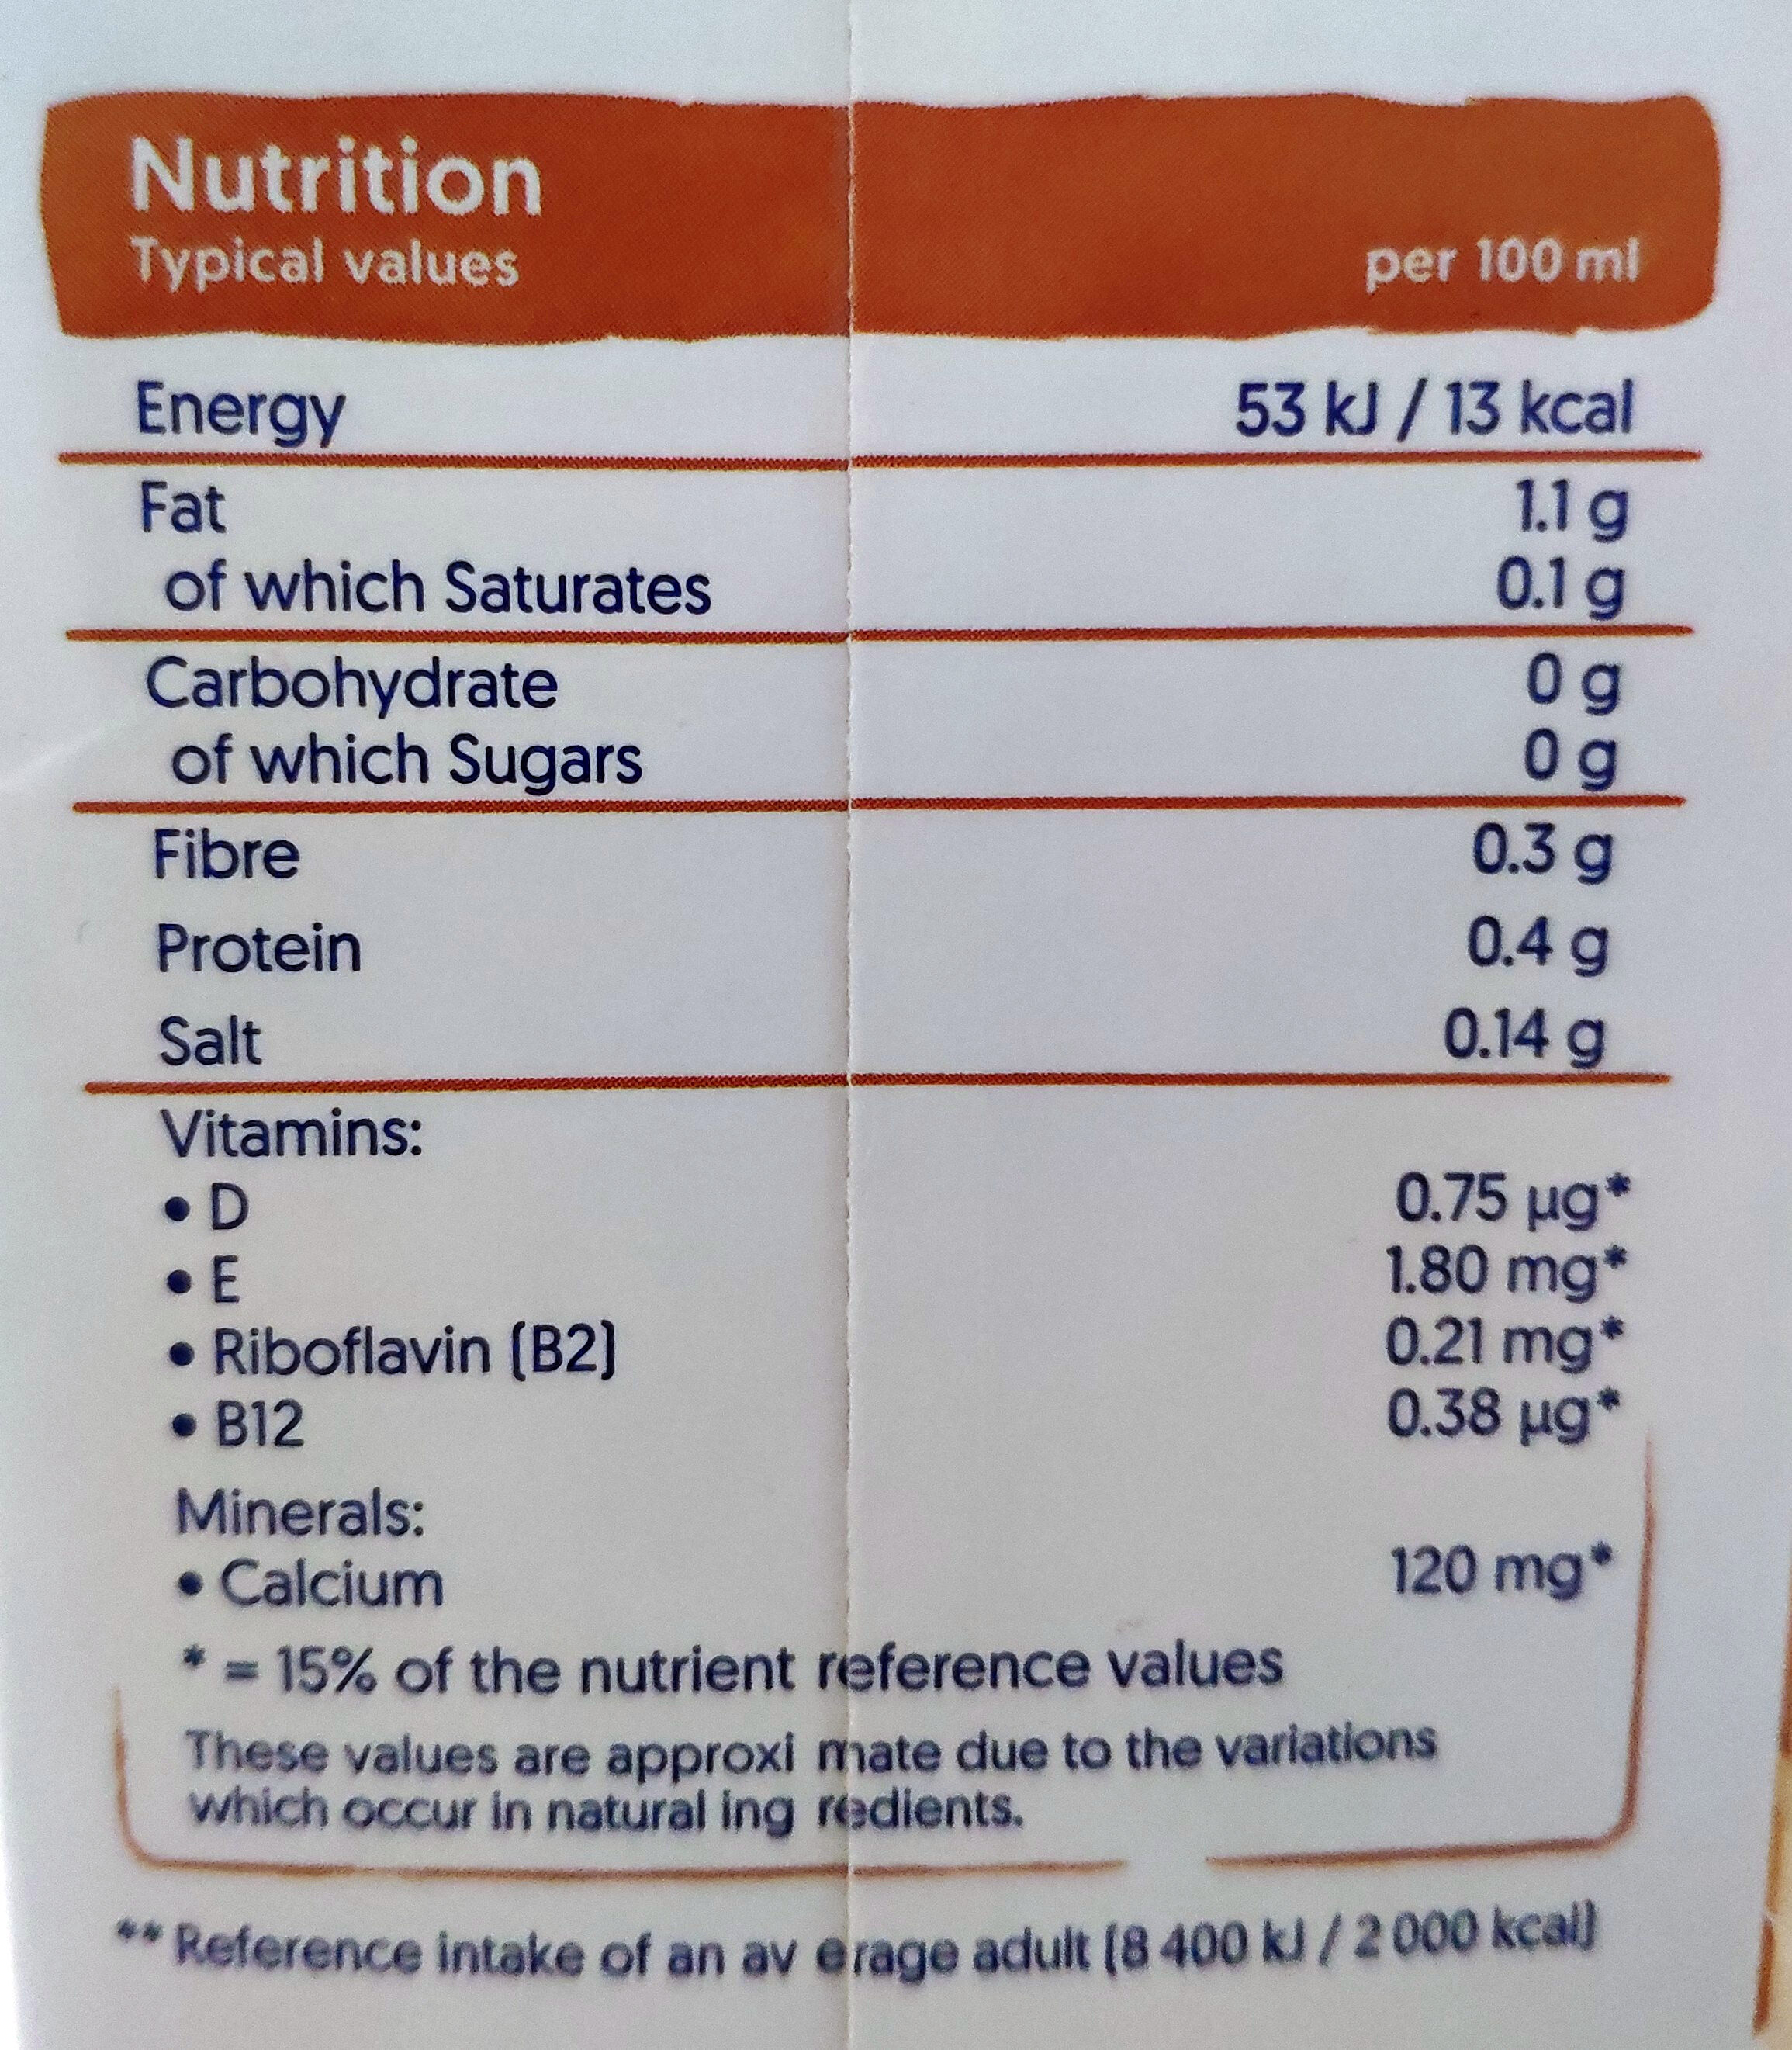 Roasted Almond No Sugars - Nutrition facts - en